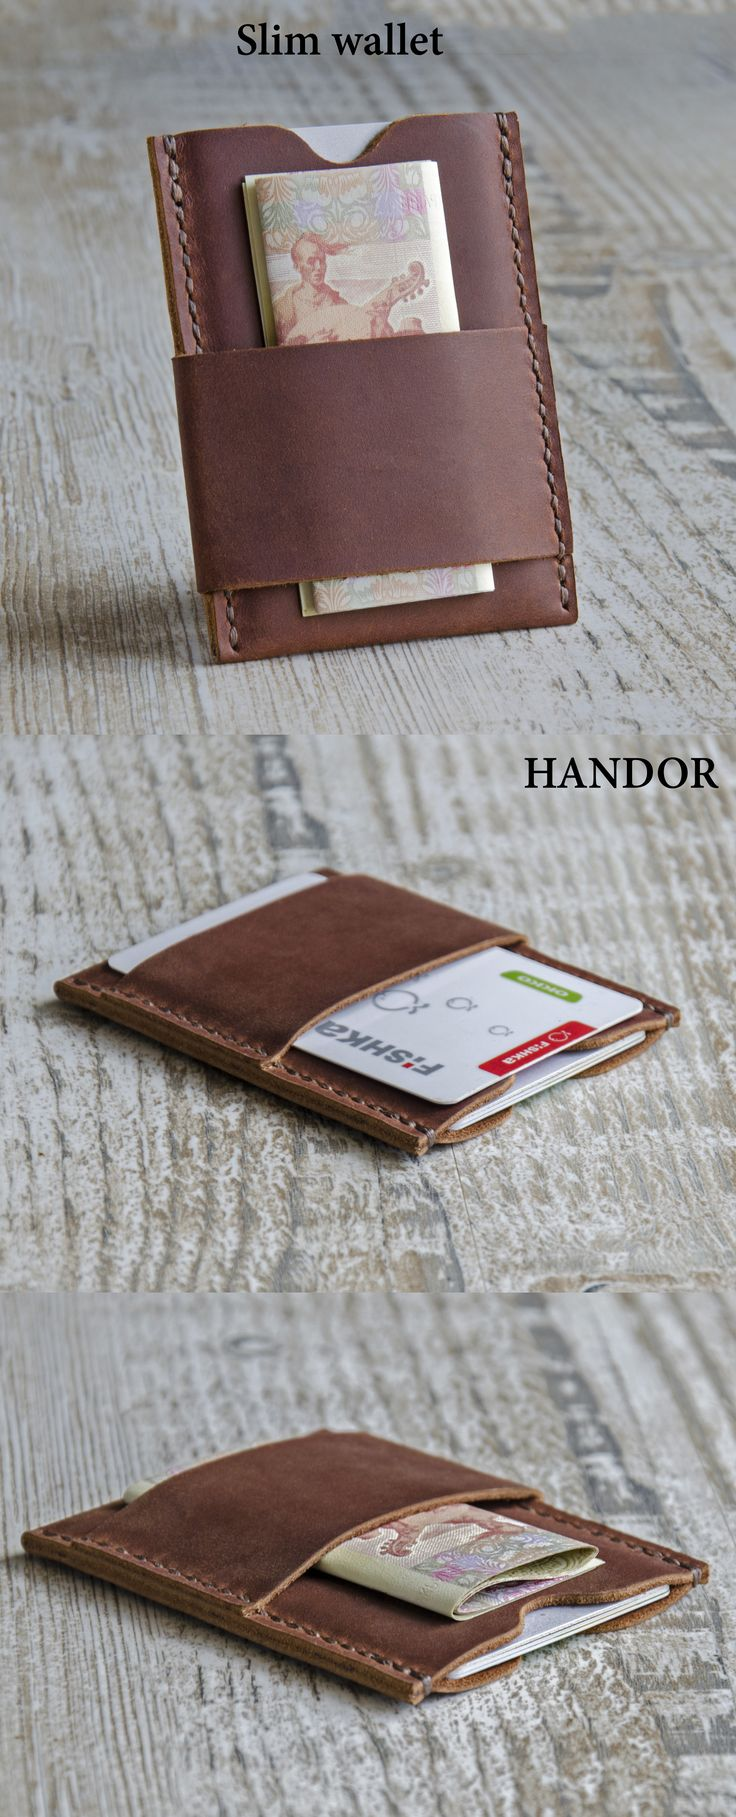 The Handmade Leather Card Wallet (front pocket wallet).. It is light, practical and elegant, made of soft leather, very durable and created with love. Its small size makes it perfect for people who like front pocket wallets.  Its an awesome, unique gift idea that will make the lucky recipient a very happy camper.